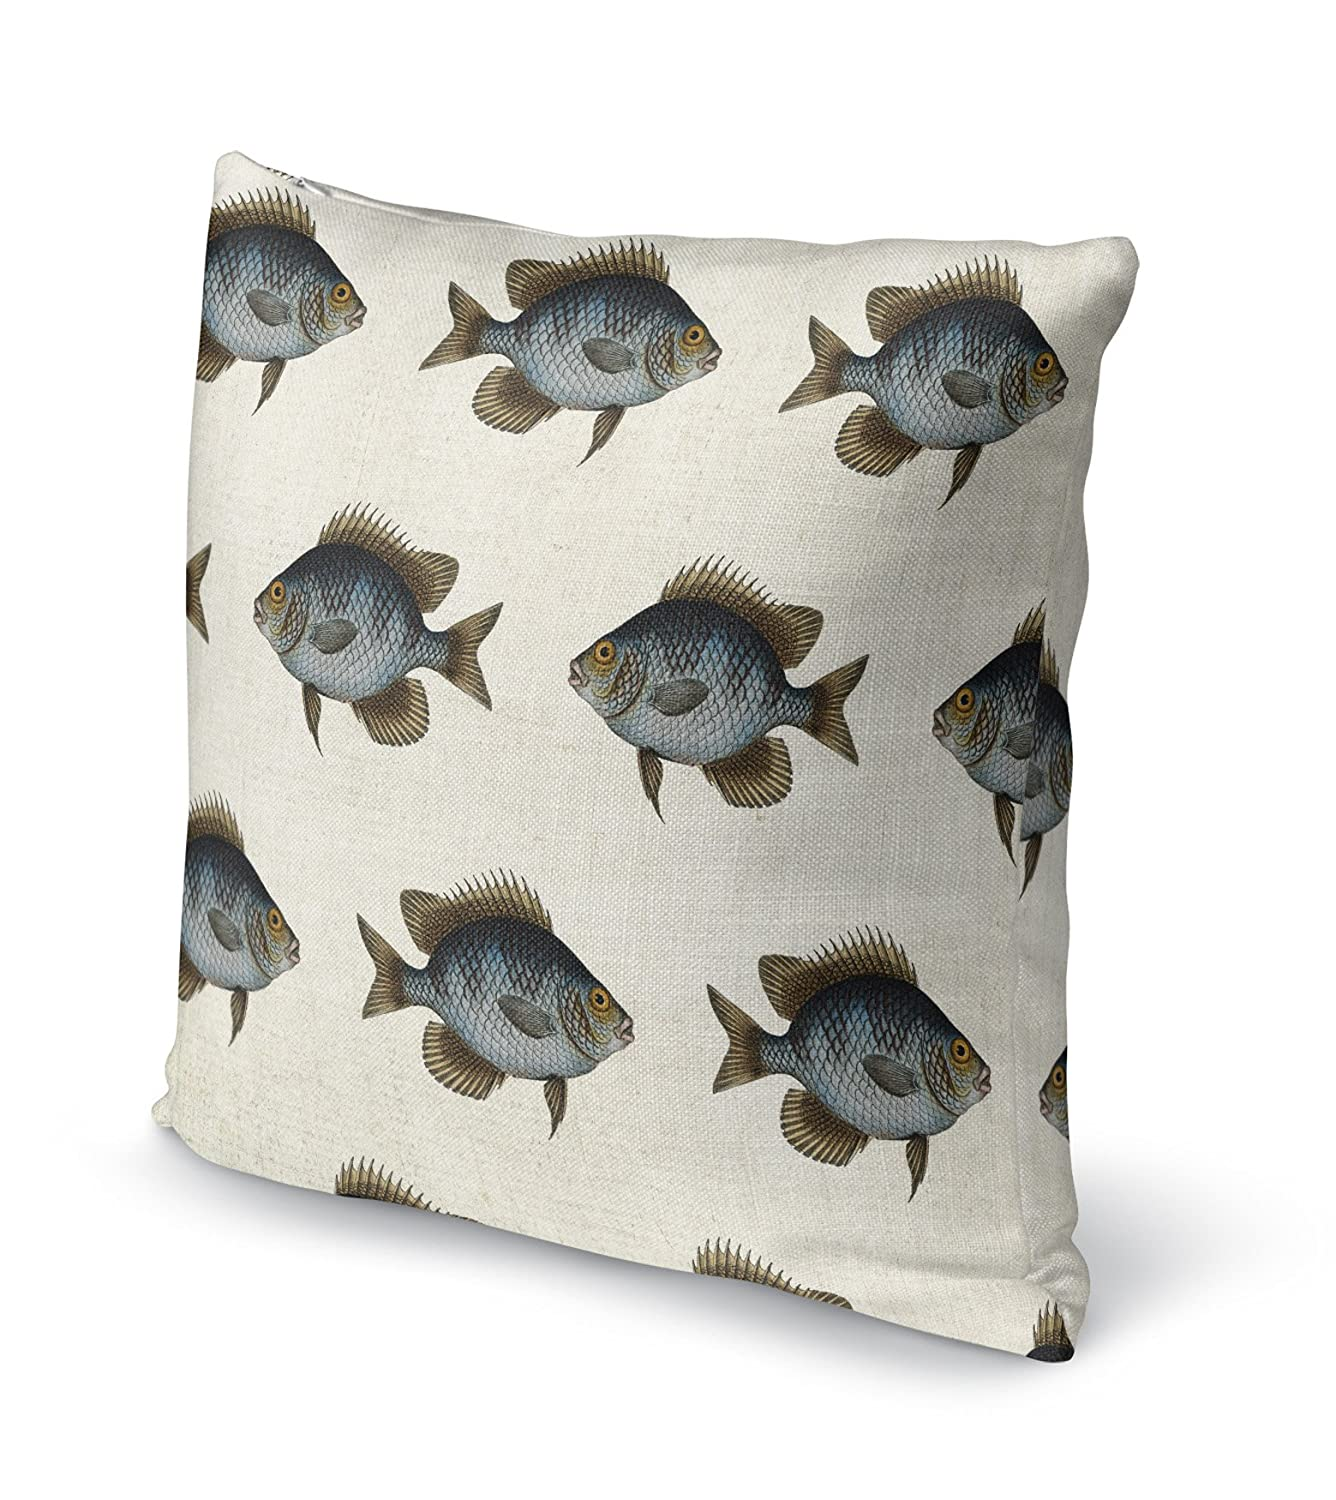 TELAVC8113DI16 Blue//Gold//Brown//Ivory - SALTWATER Collection Size: 16X16X6 - KAVKA Designs Blue Fish Accent Pillow,